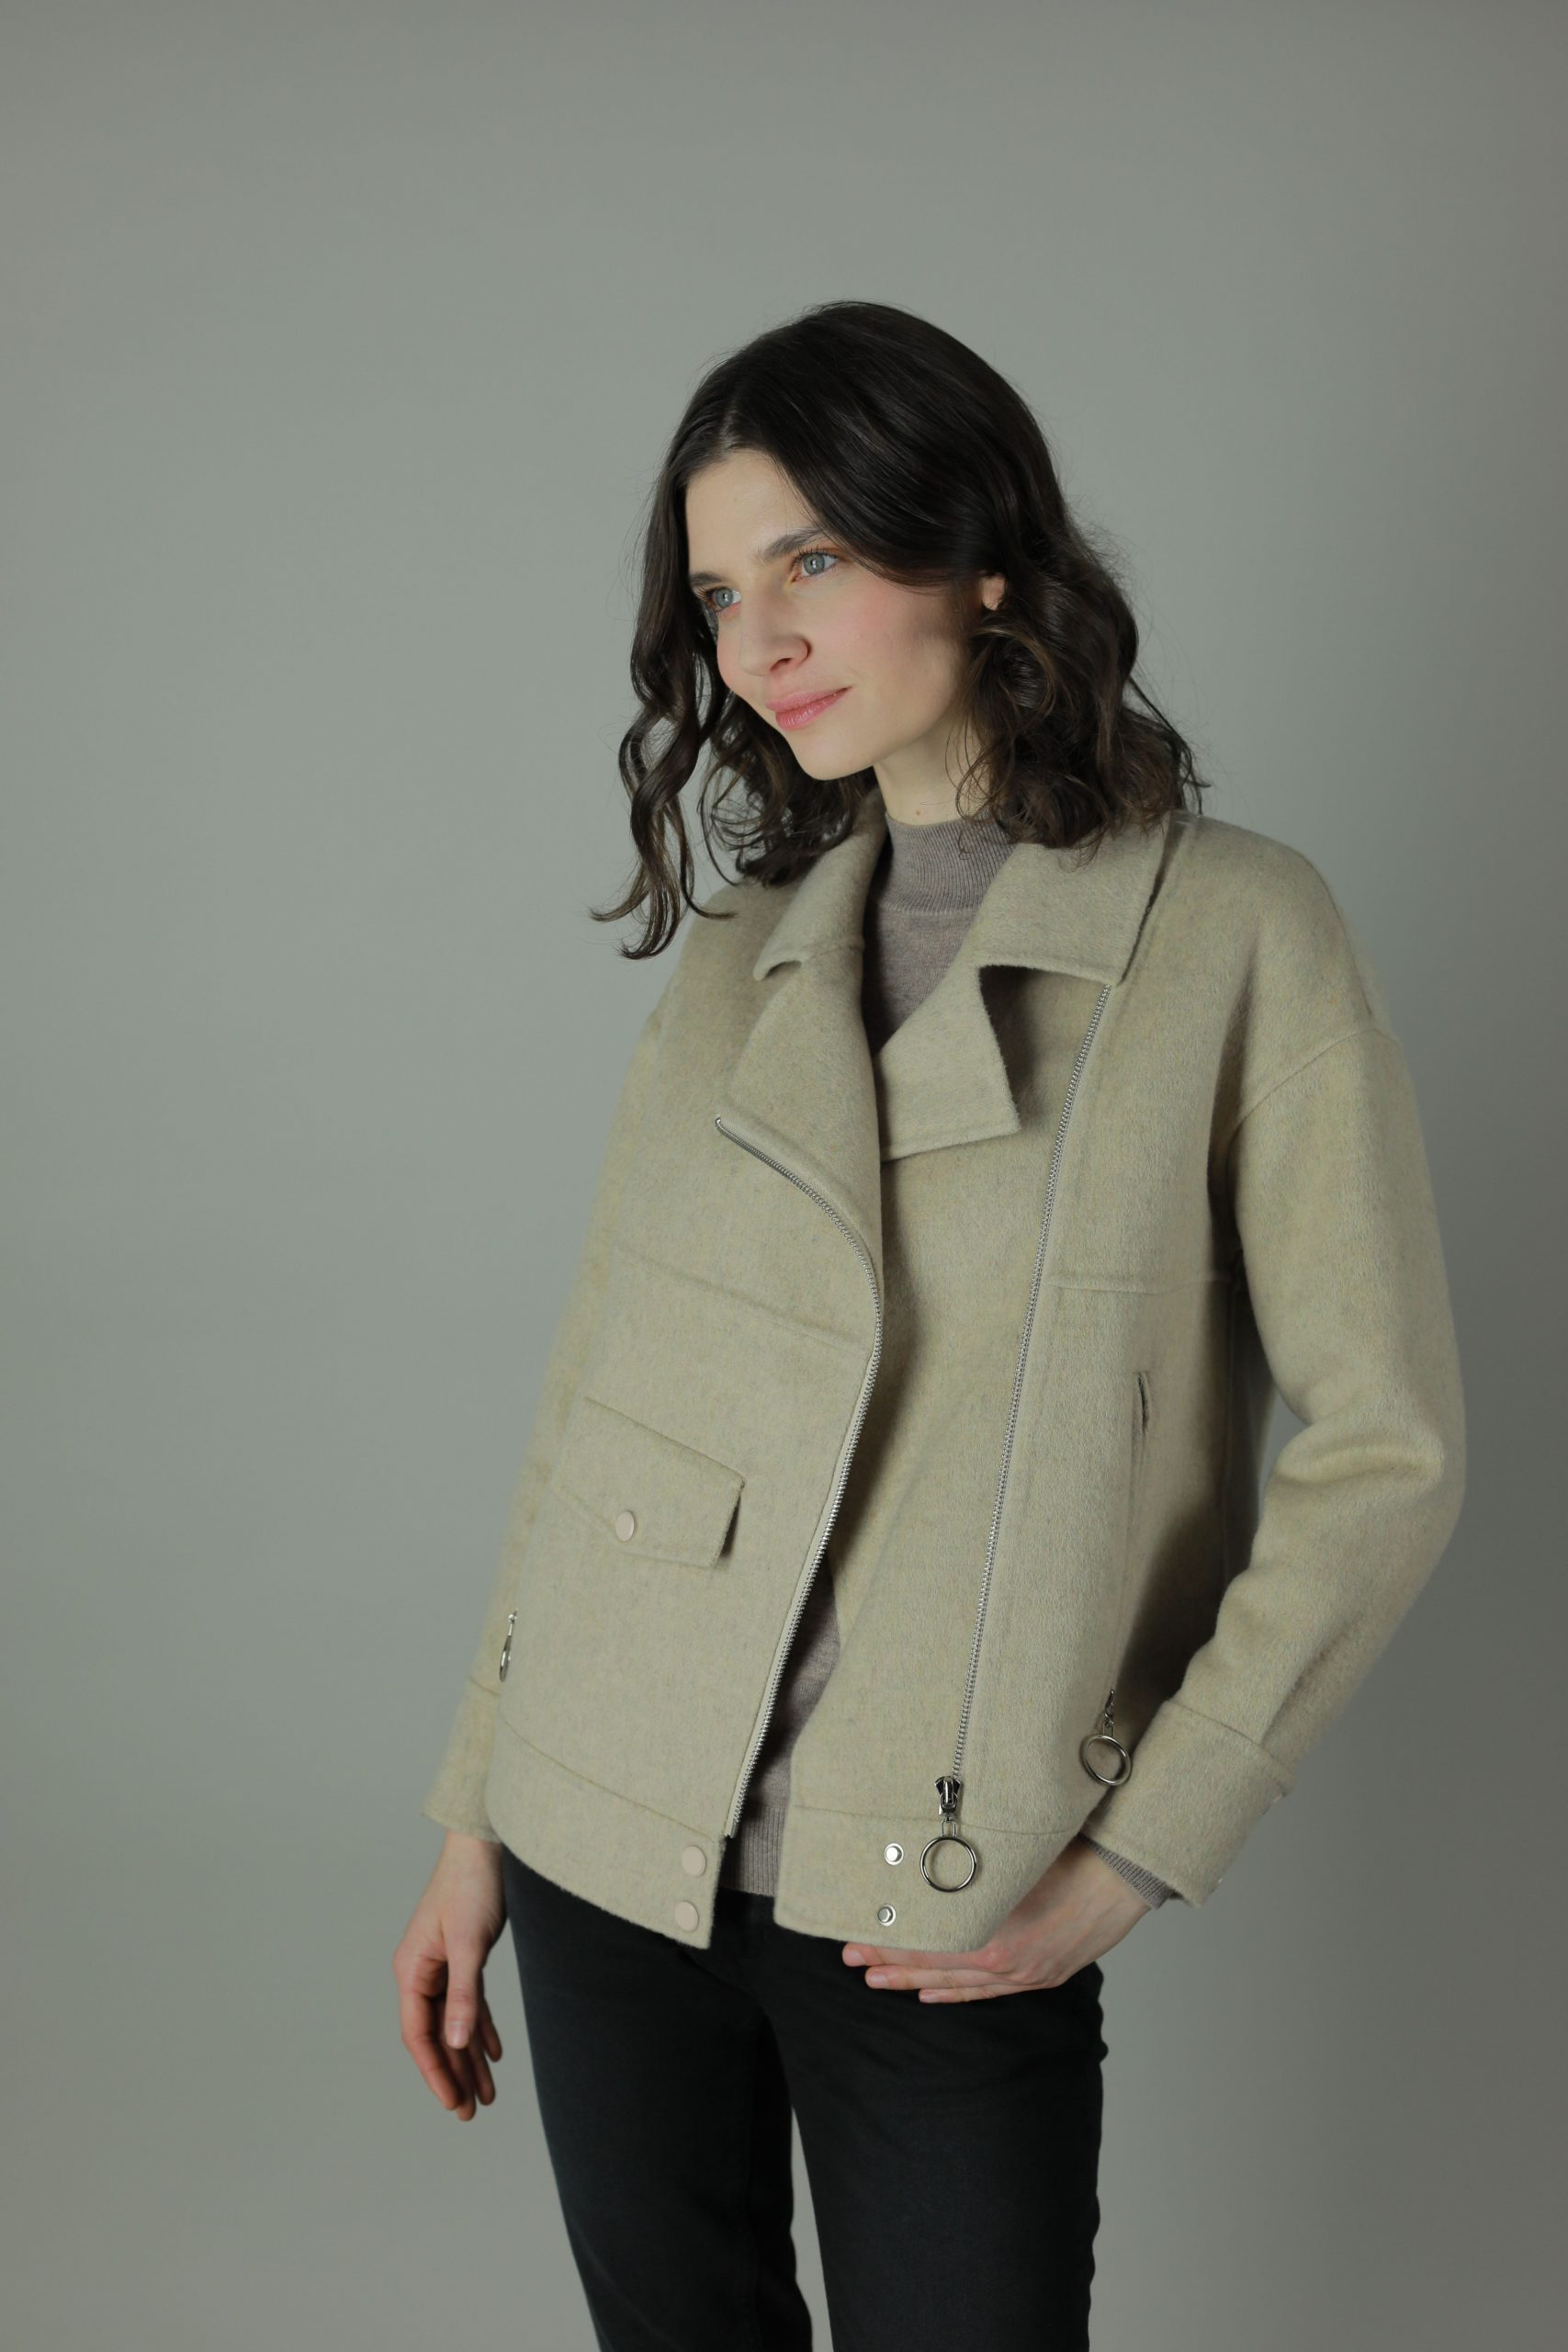 The Roxanne classic biker style jacket features 100% double-face Cashmere for luxury, style and some rock n roll. This jacket comes in cream and blue with silver trims and soft cashmere interior for the perfect luxurious feel year round.